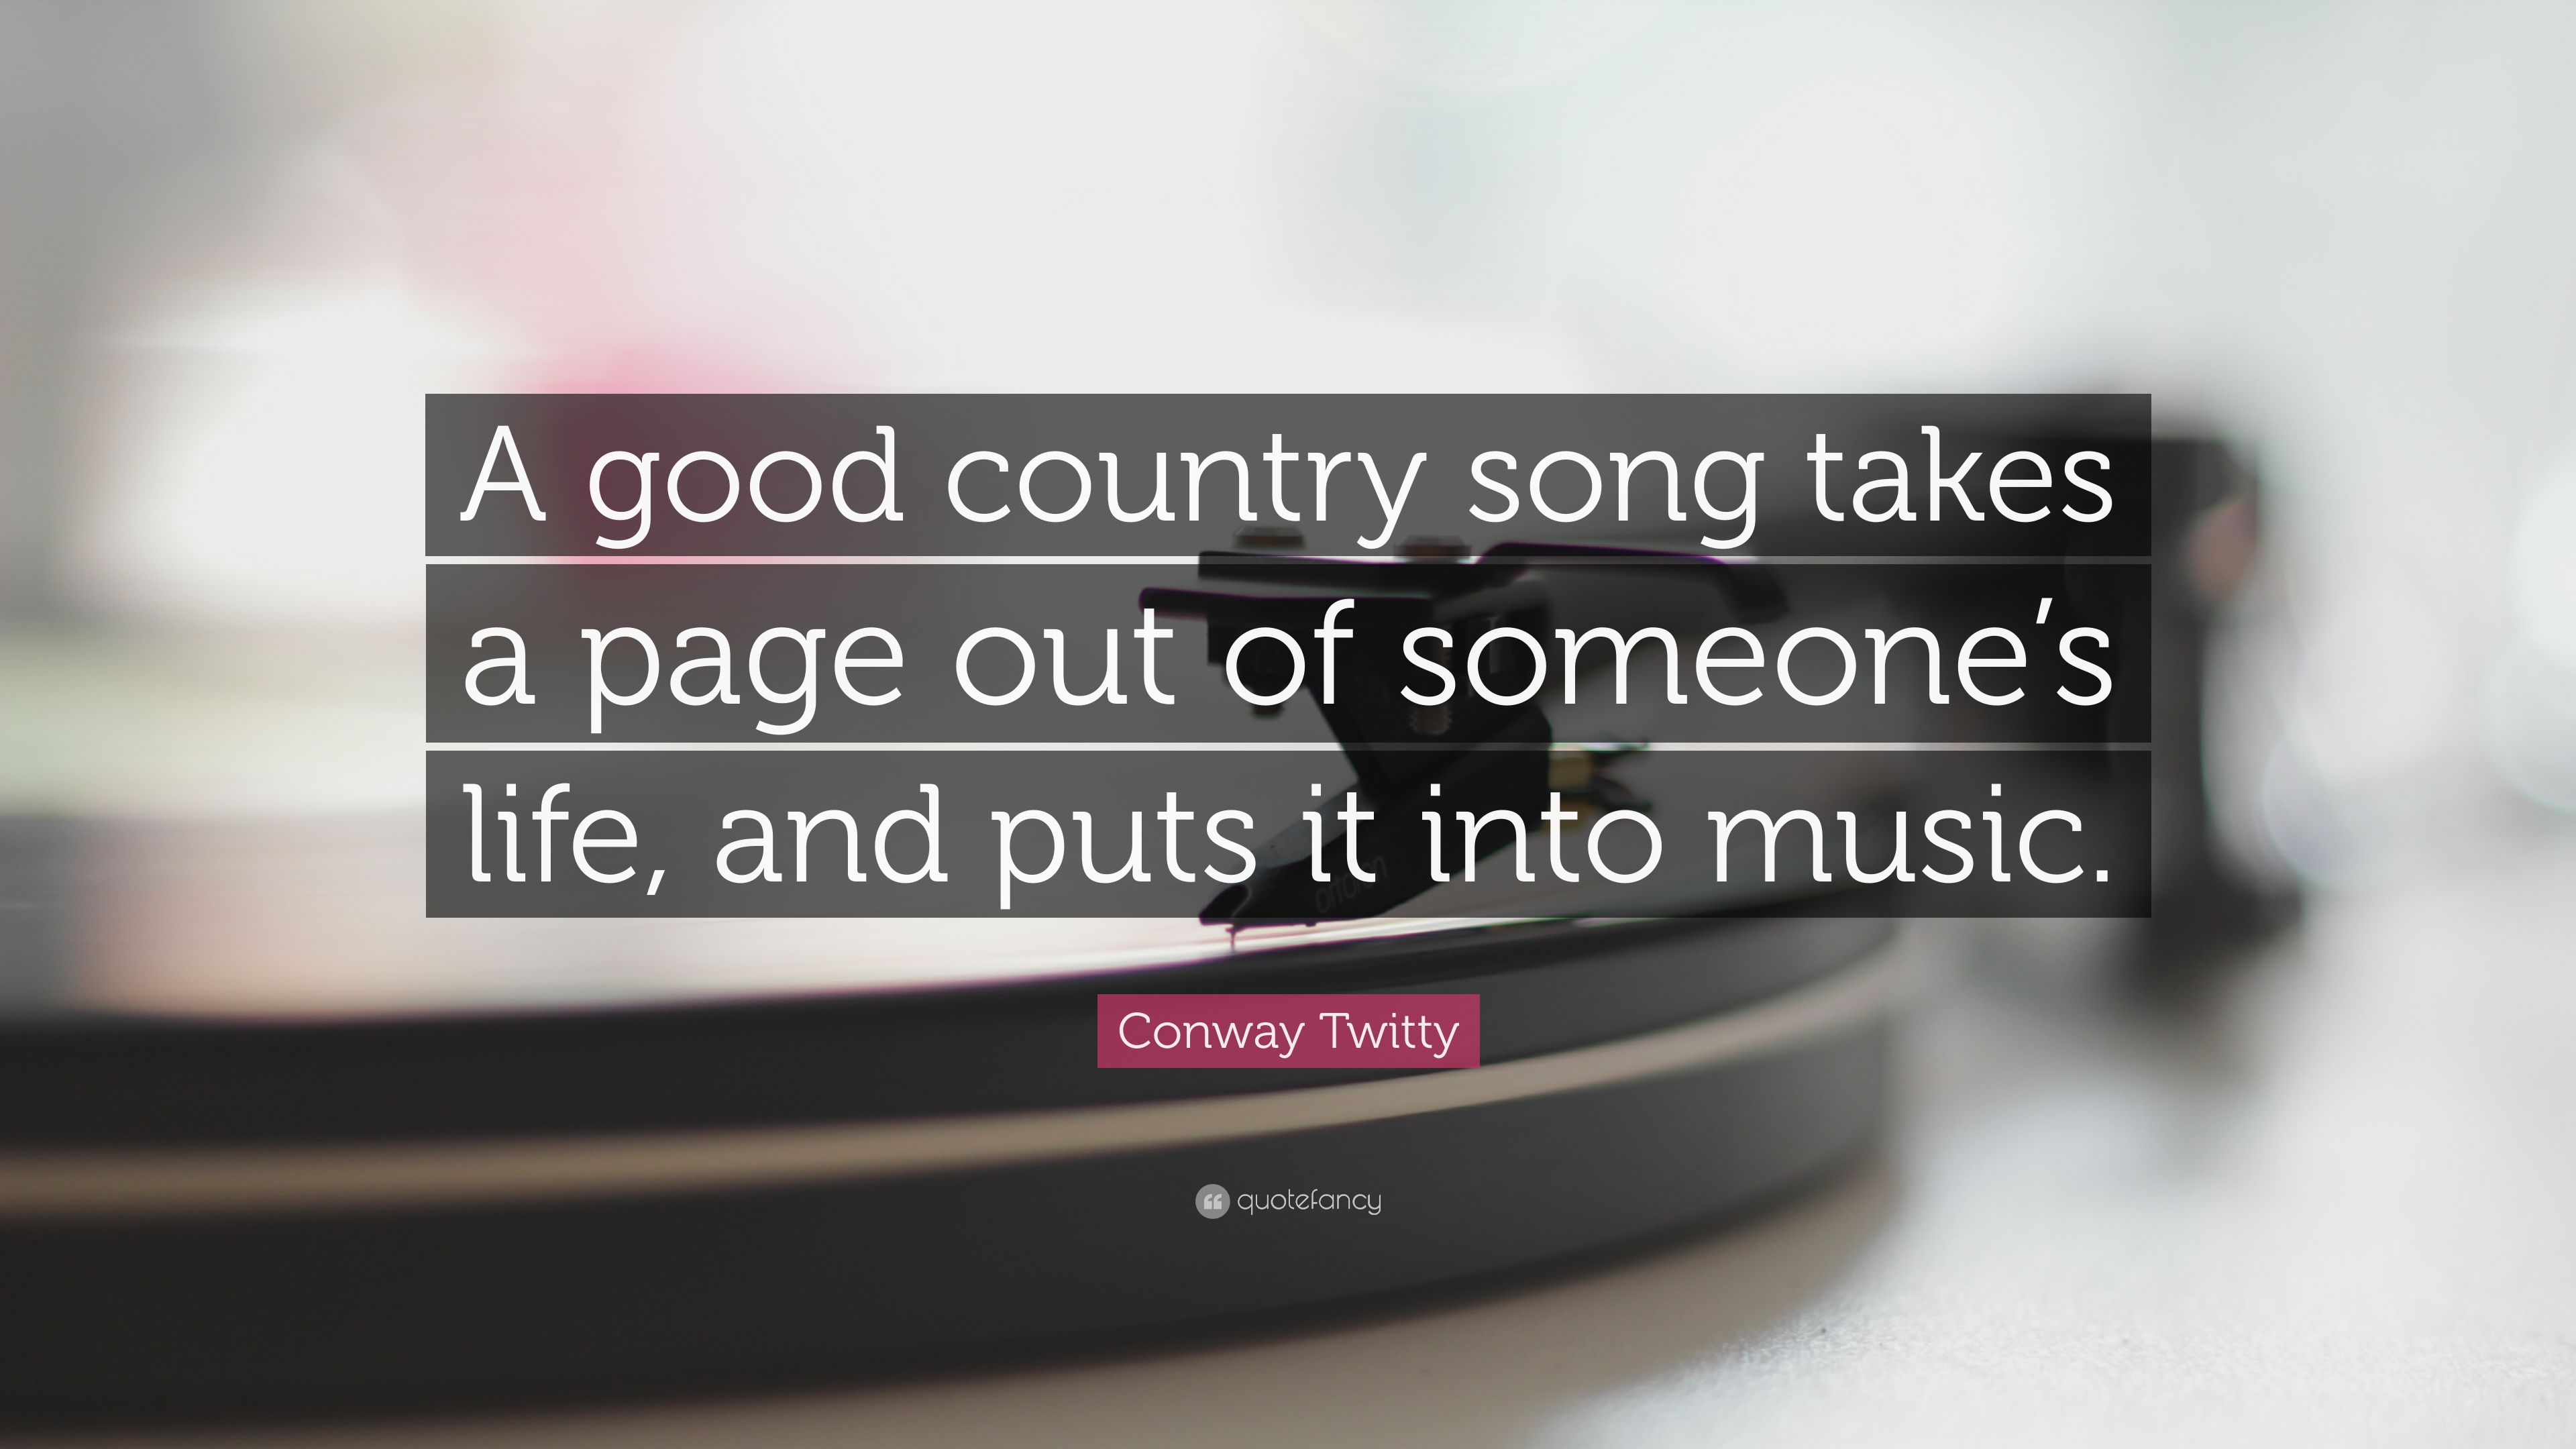 Conway Twitty Quotes (12 wallpapers) - Quotefancy